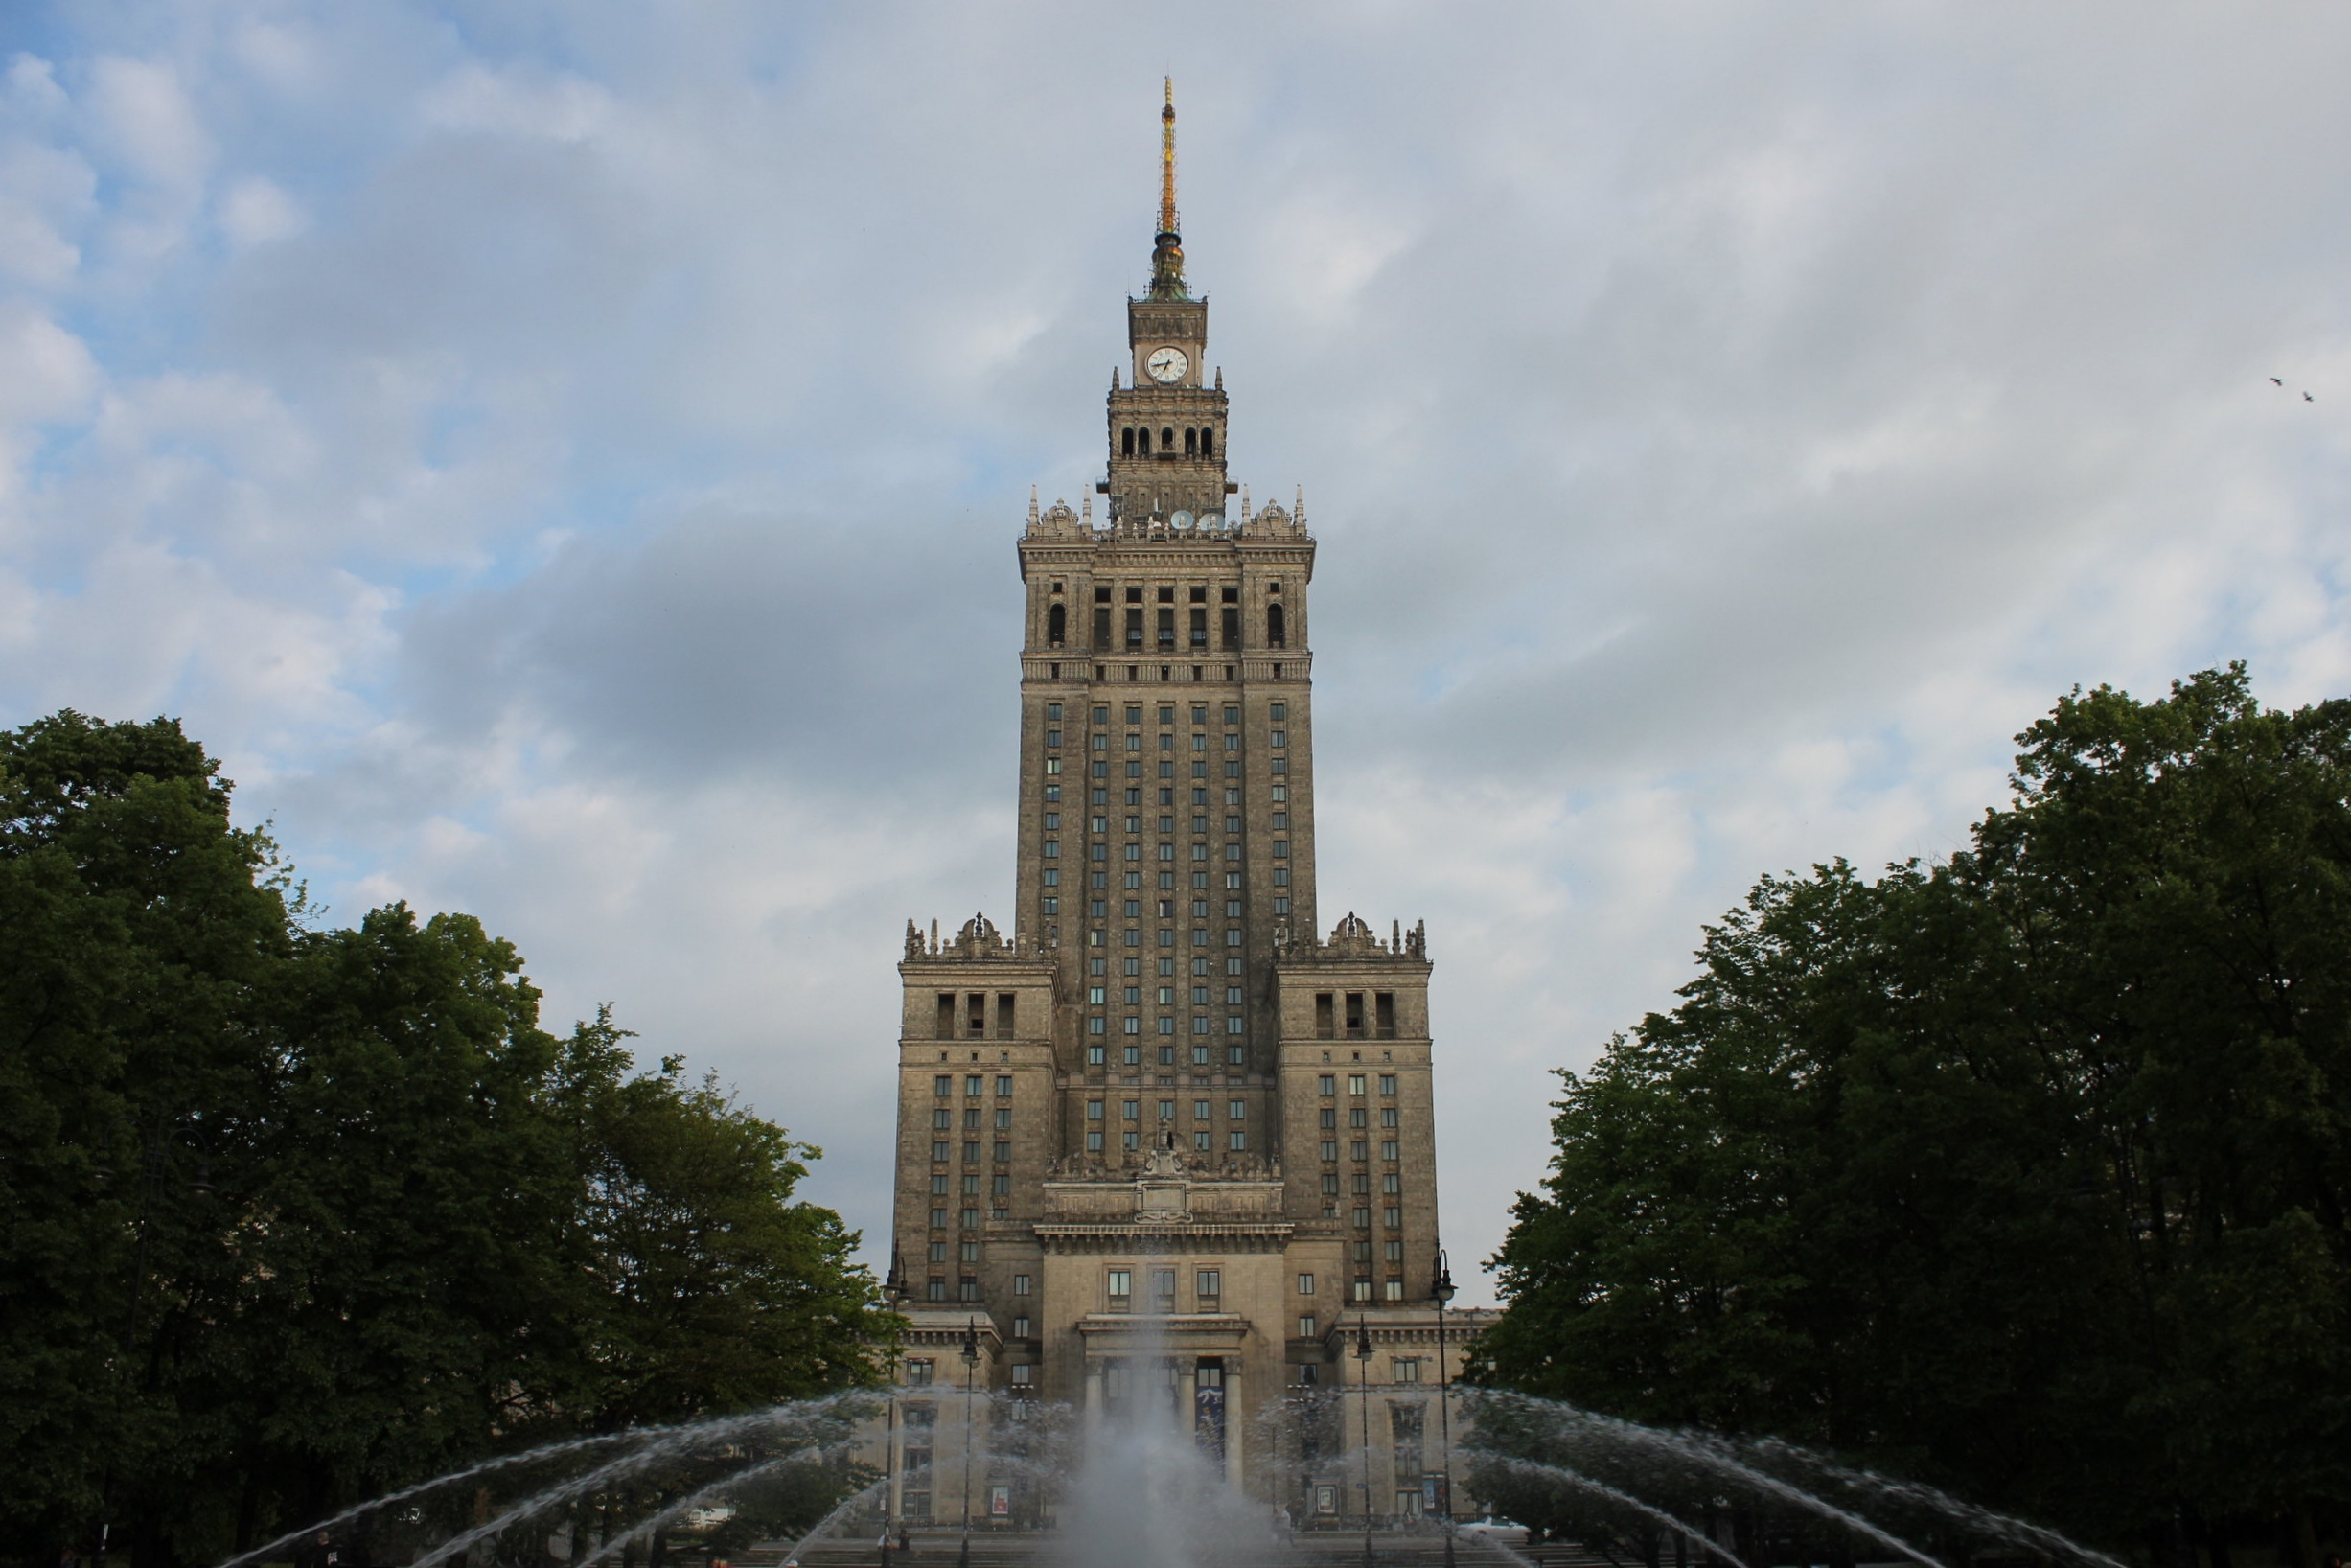 Warsaw – Palace of Culture and Science